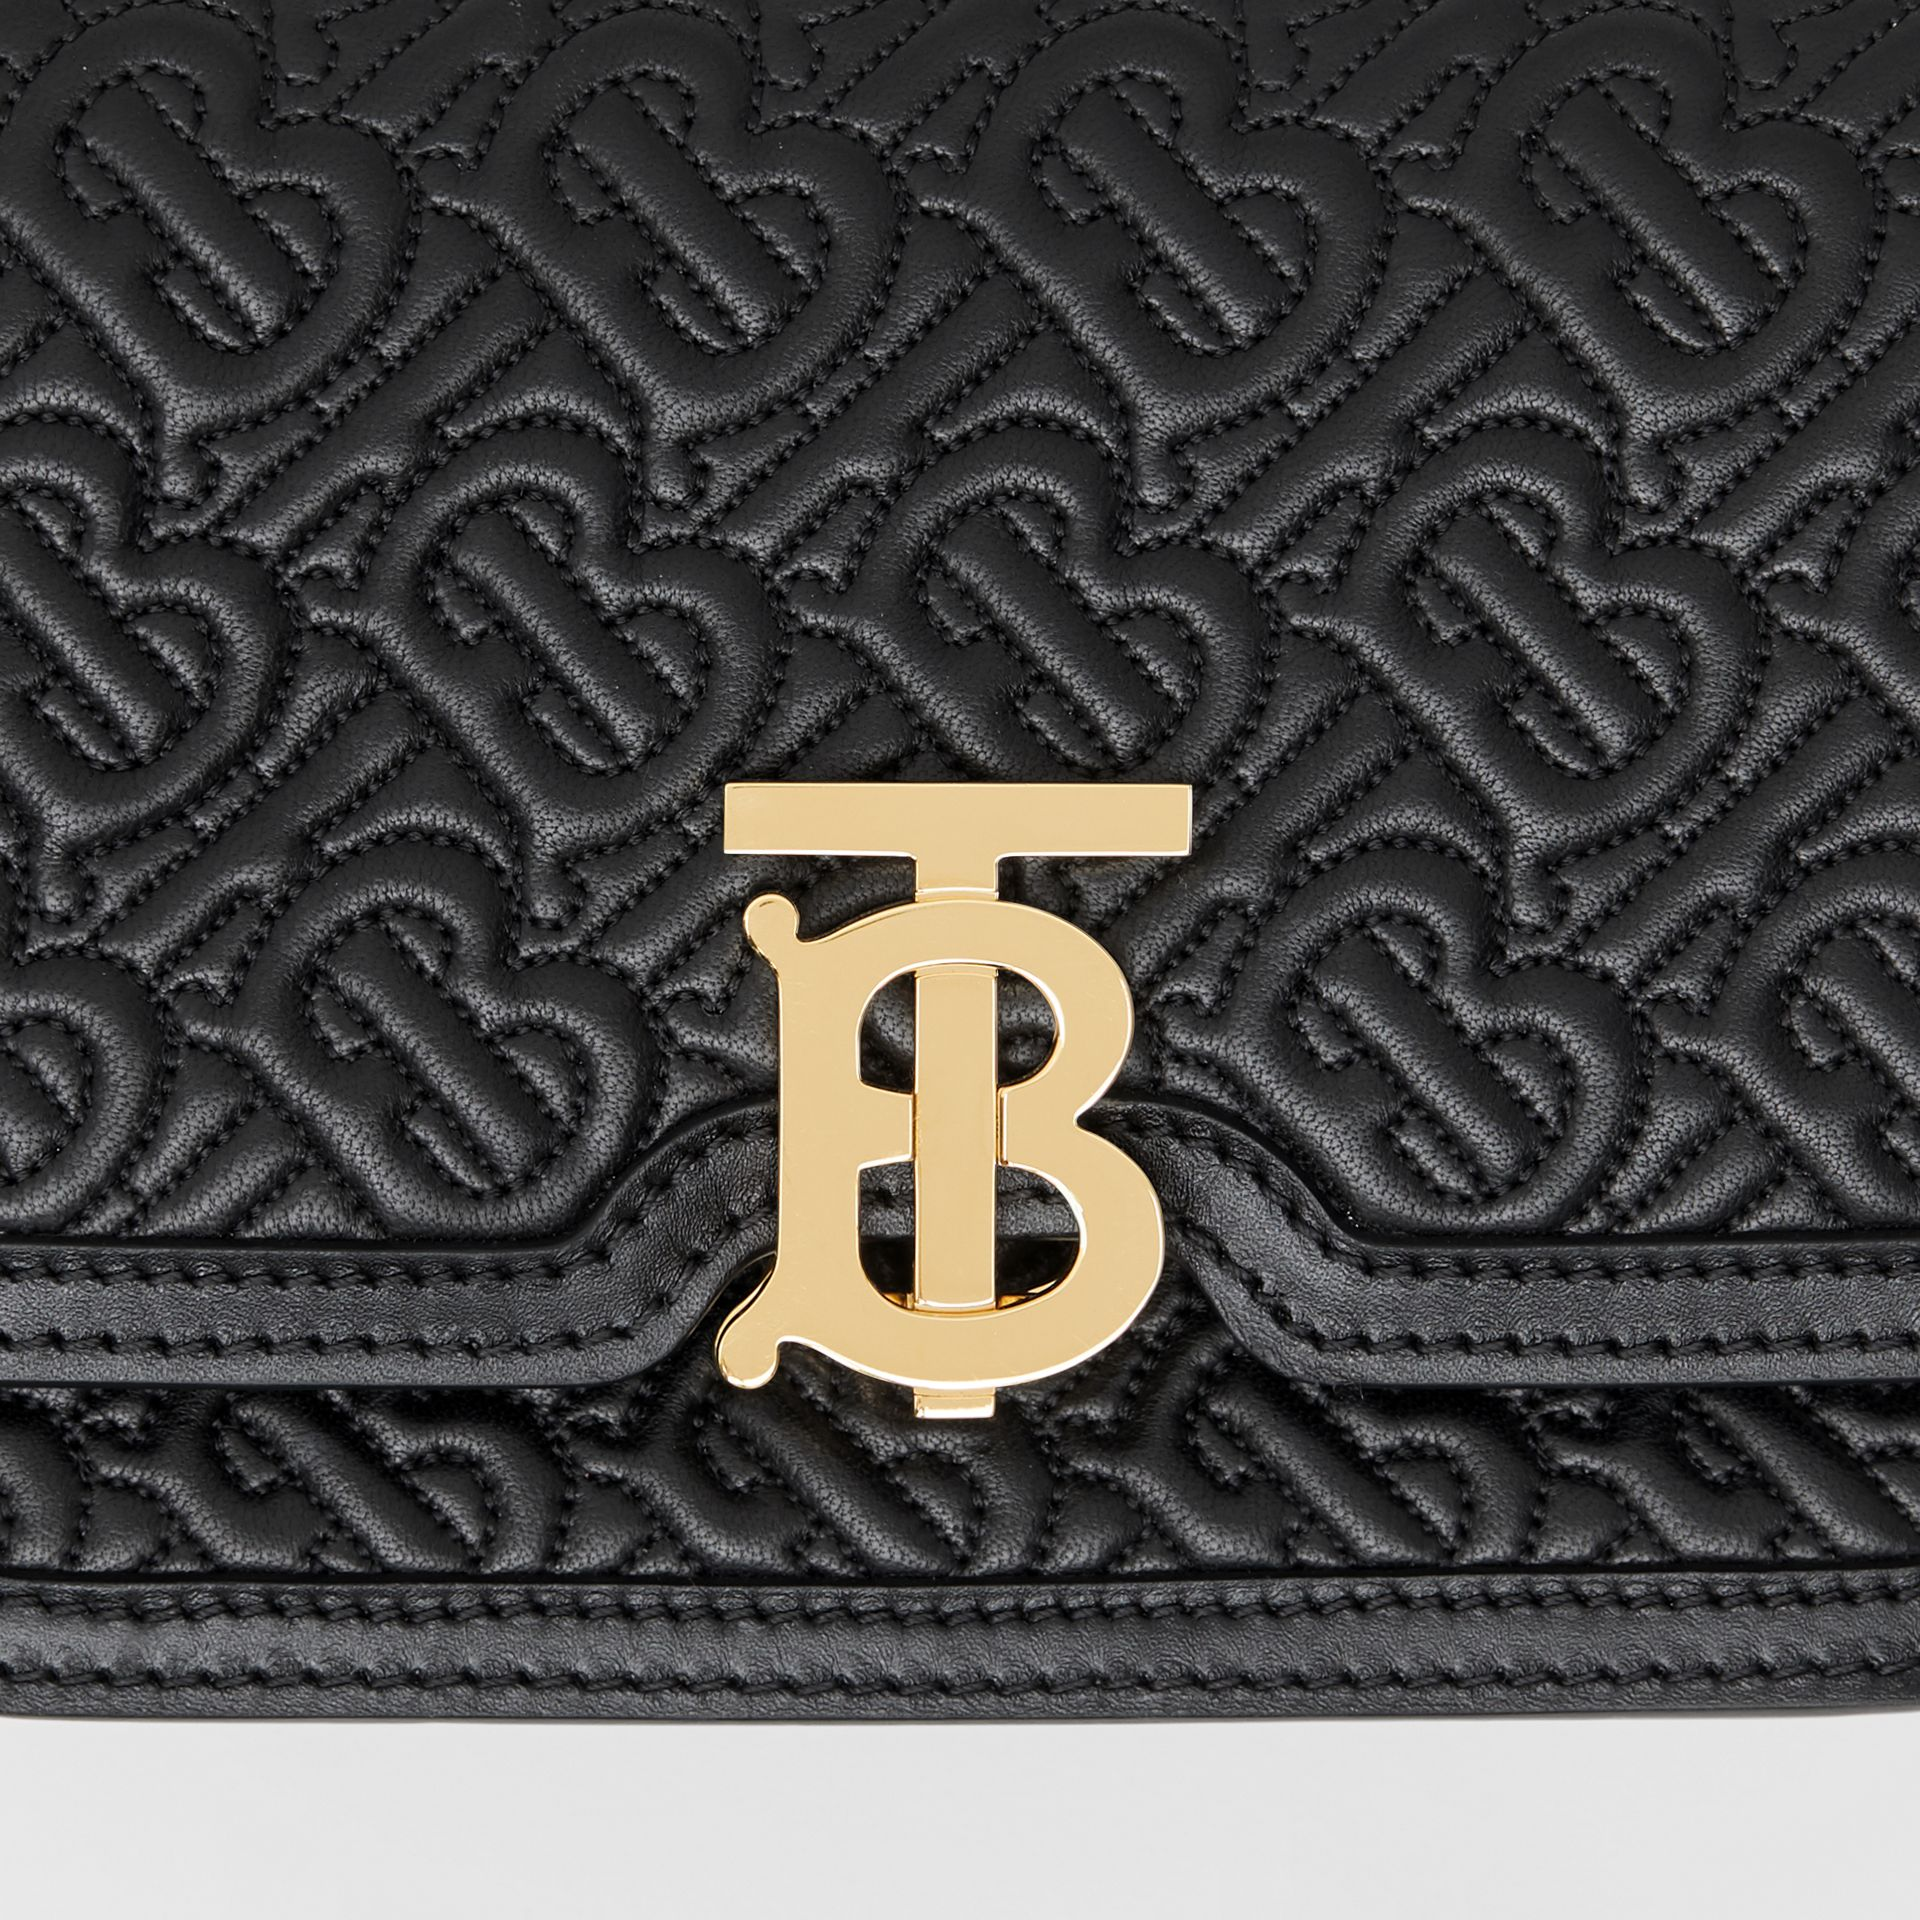 Belted Quilted Monogram Lambskin TB Bag in Black - Women | Burberry Hong Kong S.A.R - gallery image 1